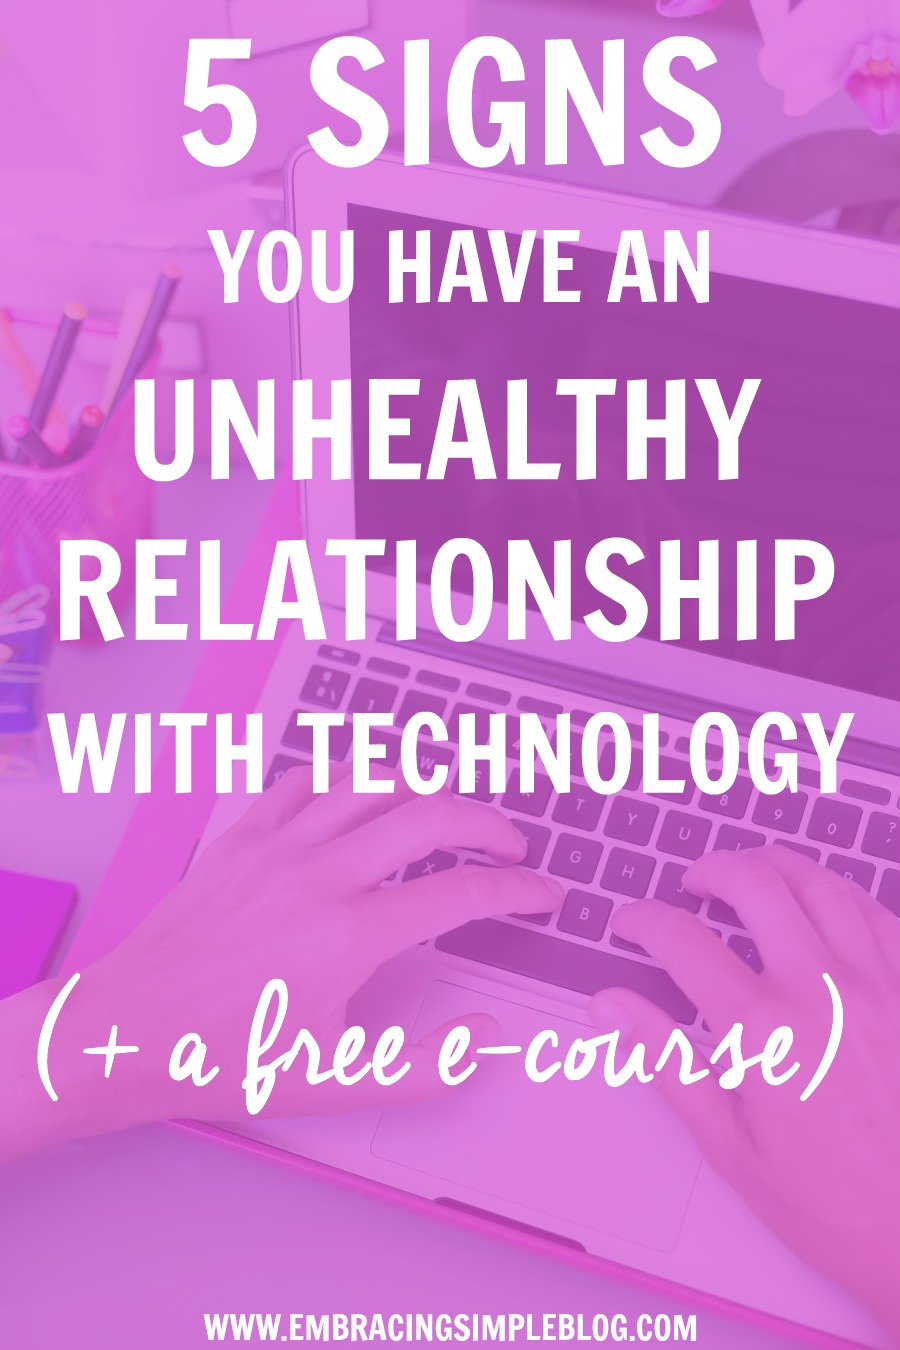 5 Signs You Have An Unhealthy Relationship With Technology Christina Tiplea